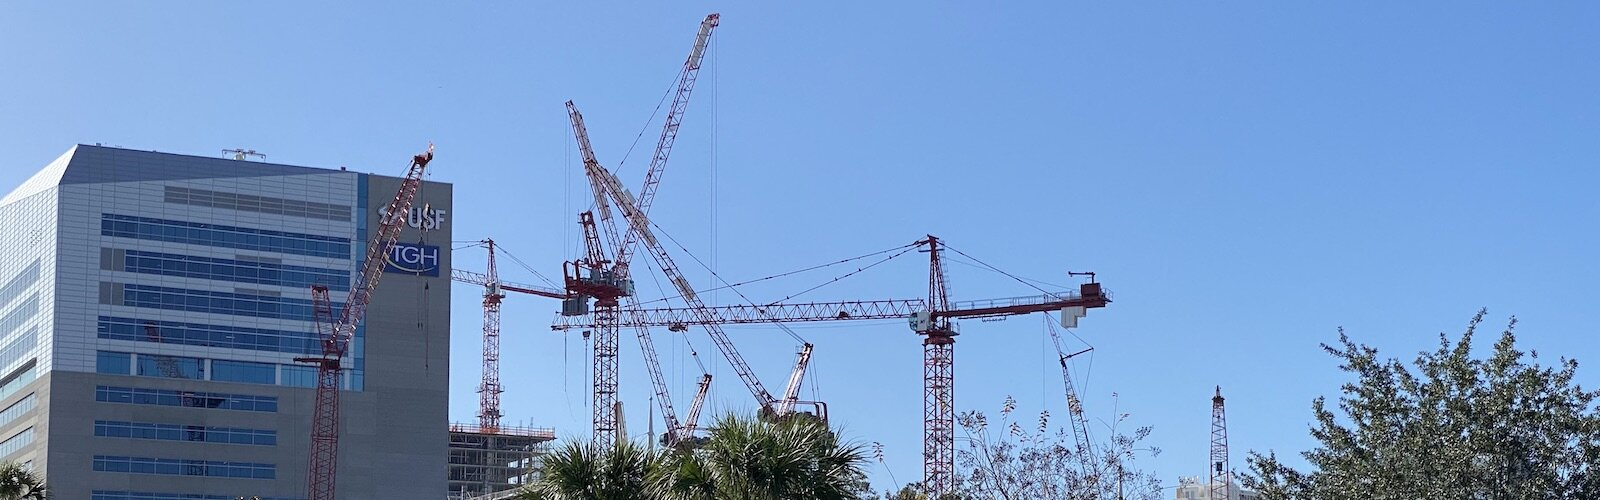 Construction cranes surrounding the new USF Health College of Medicine in downtown Tampa.